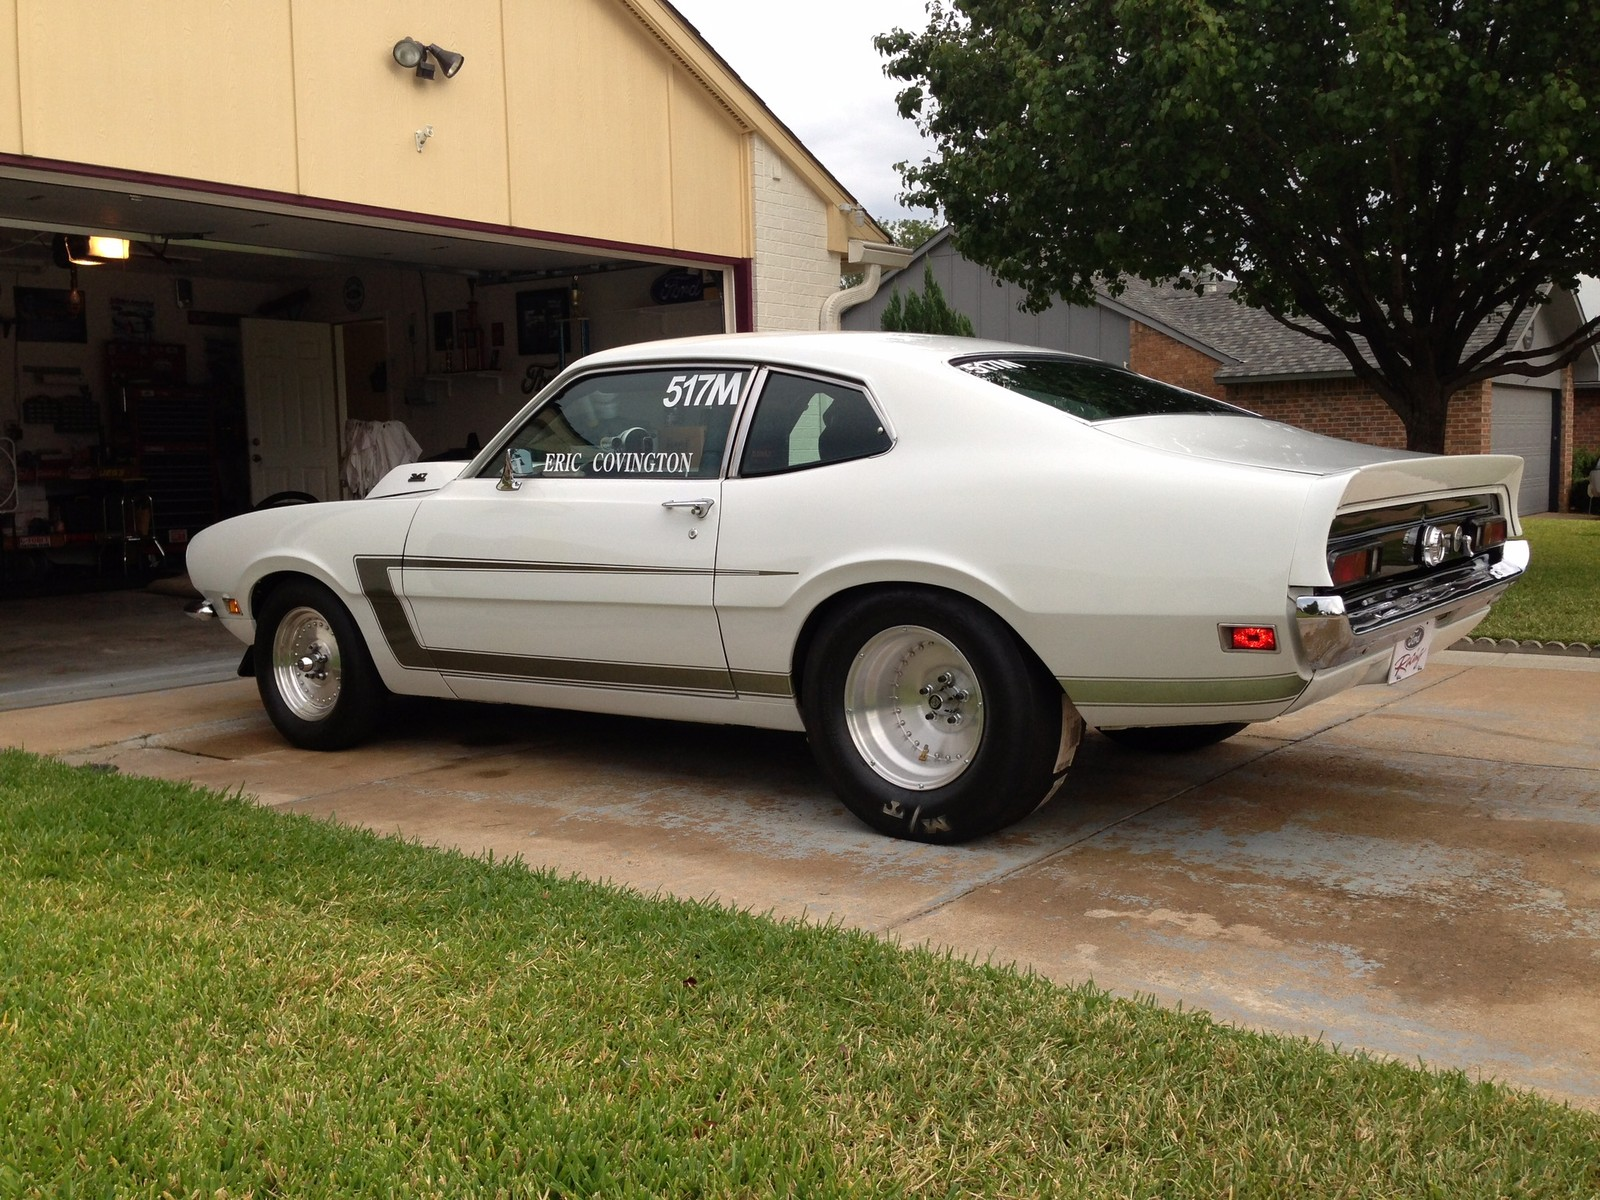 1972 white ford maverick picture mods upgrades